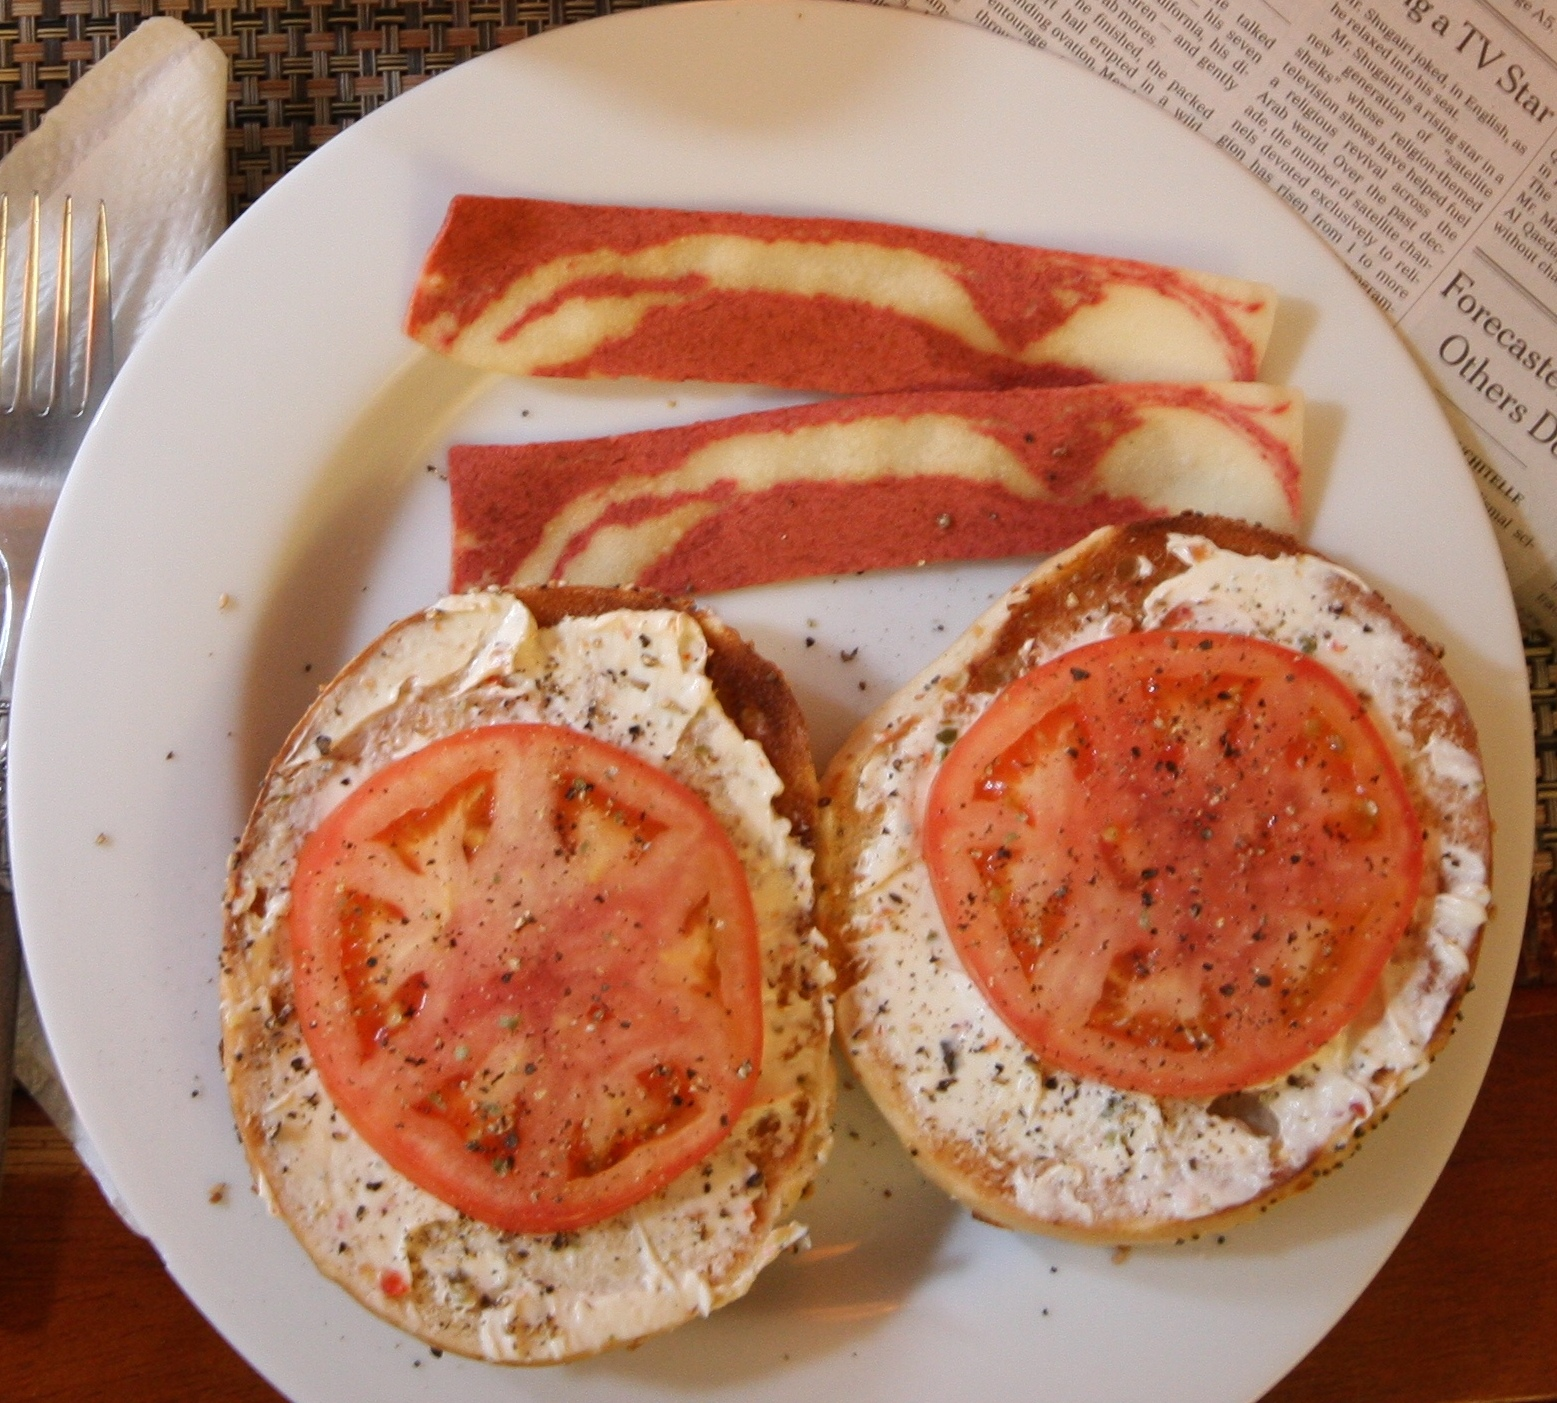 Vegetarian bacon on low cholesterol